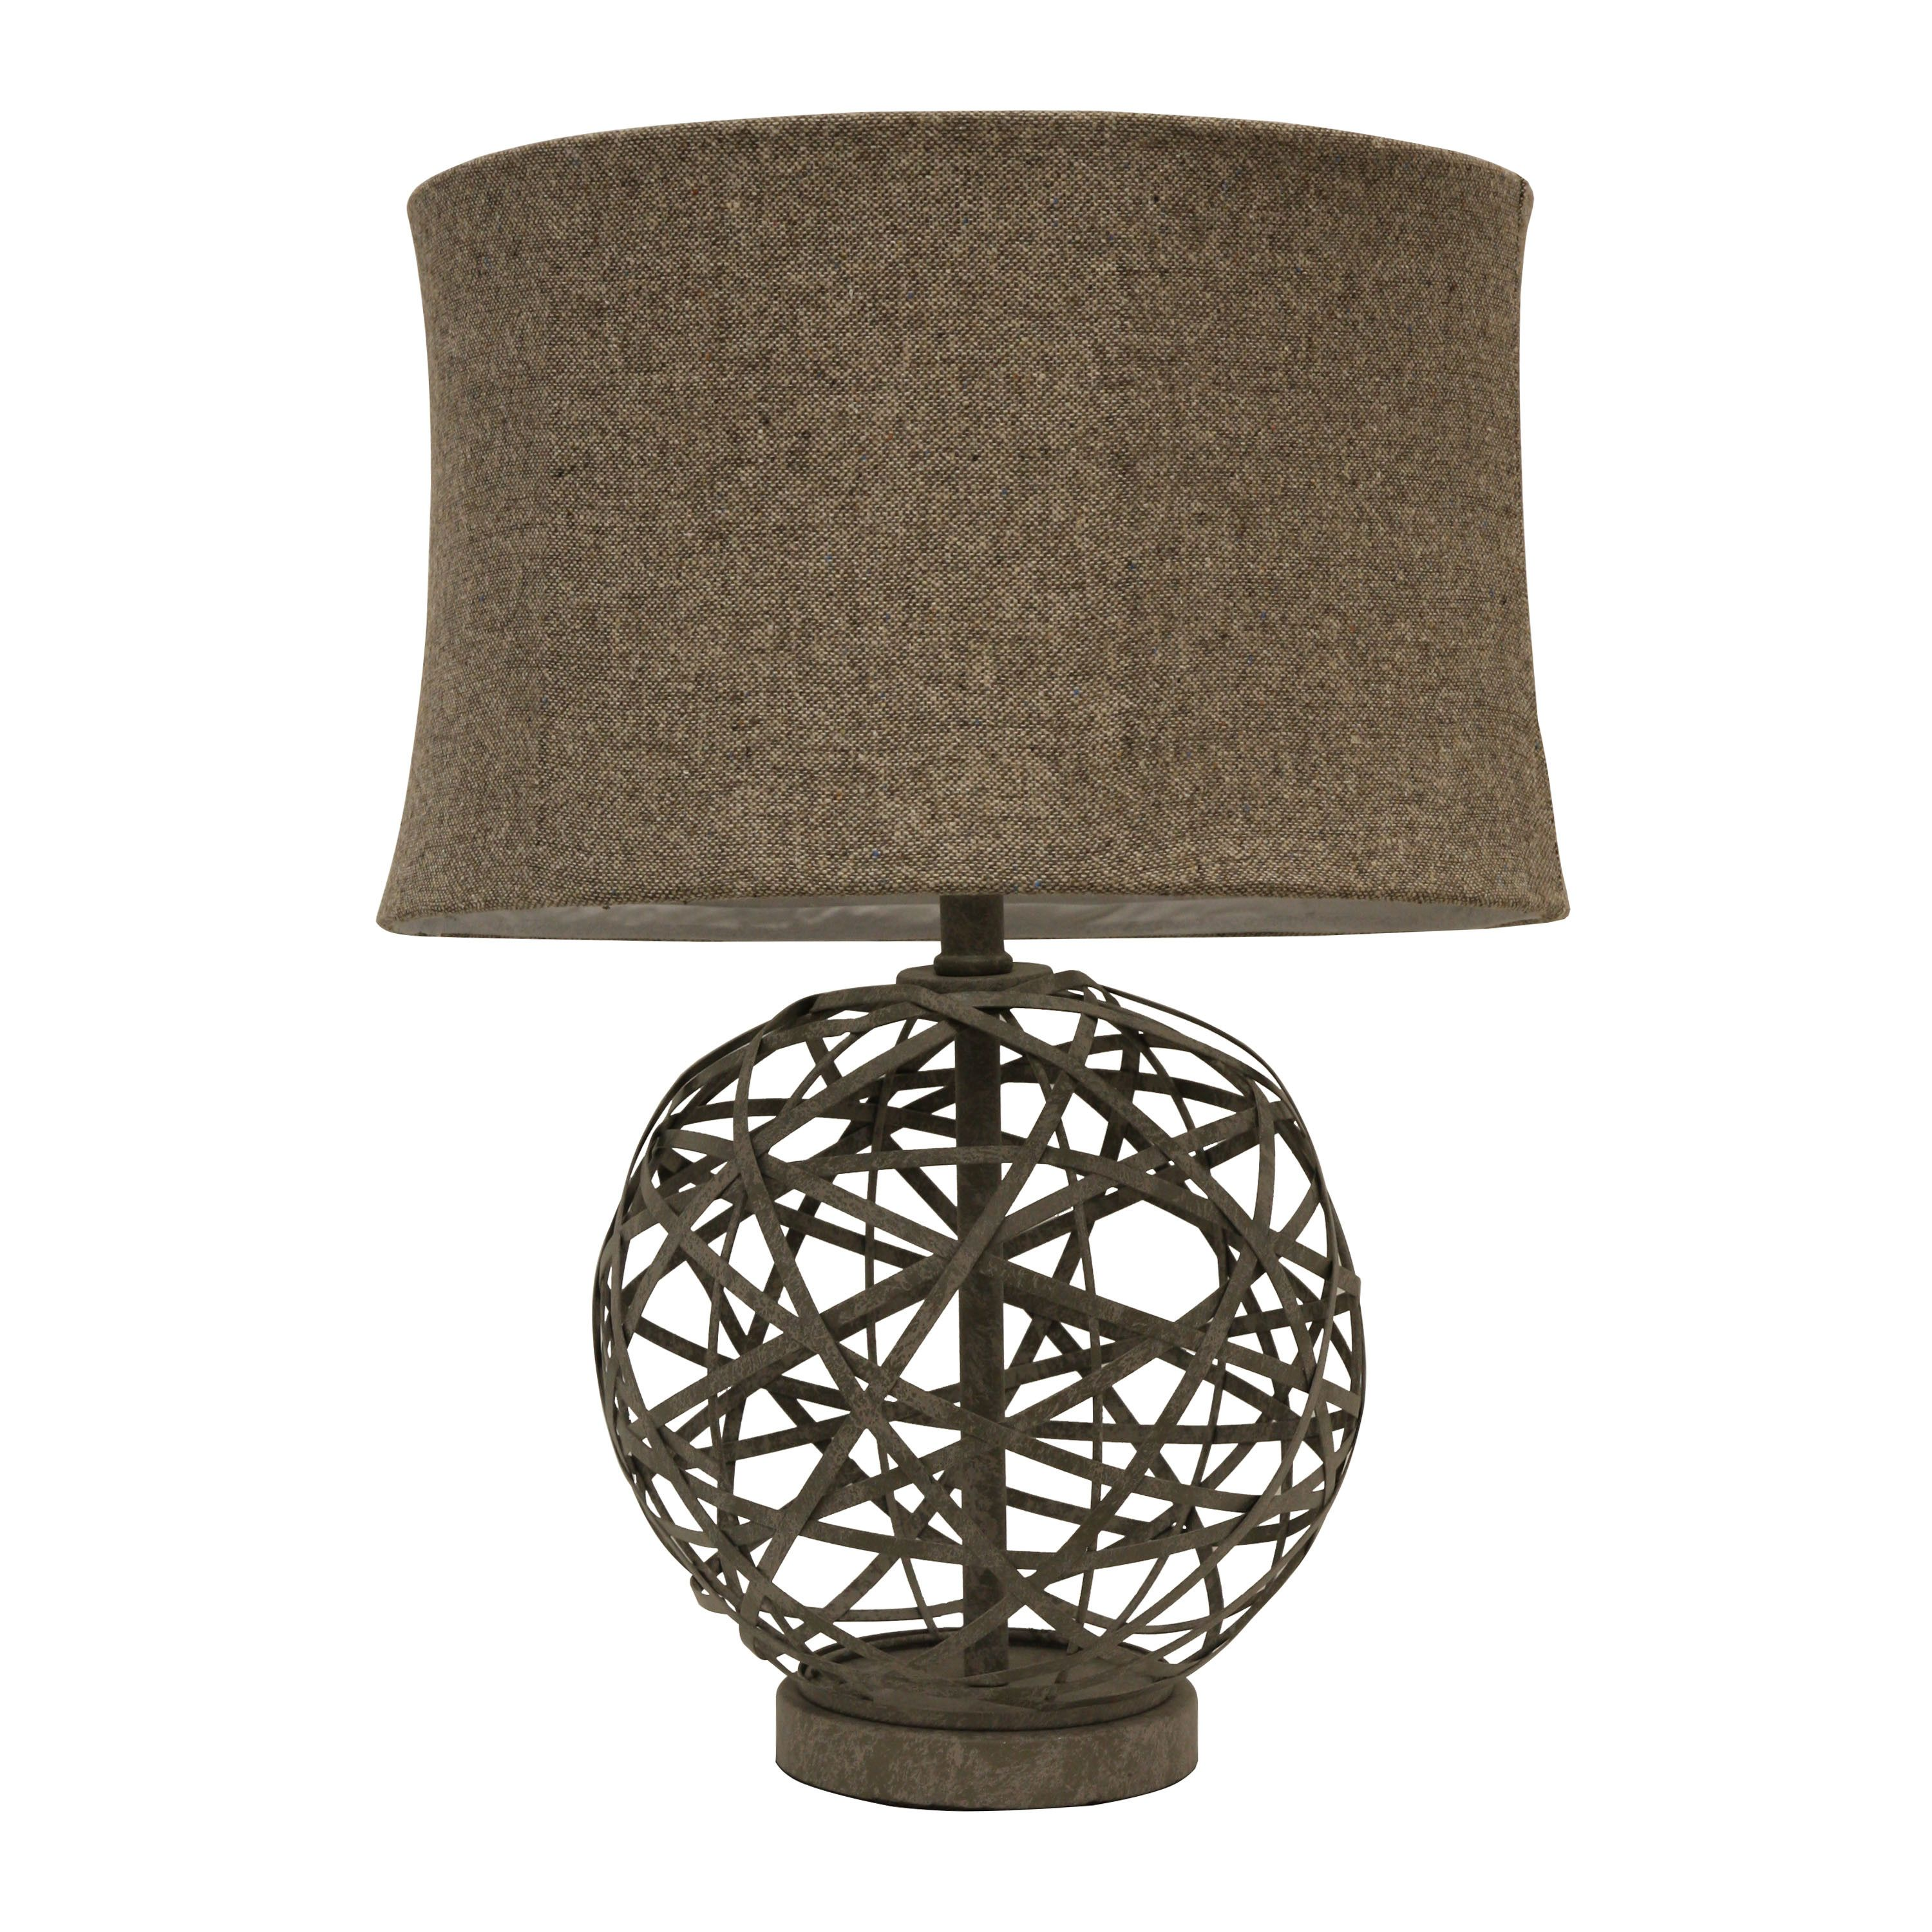 J Hunt Home Strapped Steel Ball 22 Table Lamp With Drum Shade Ball Lamps Lamp Decor Therapy